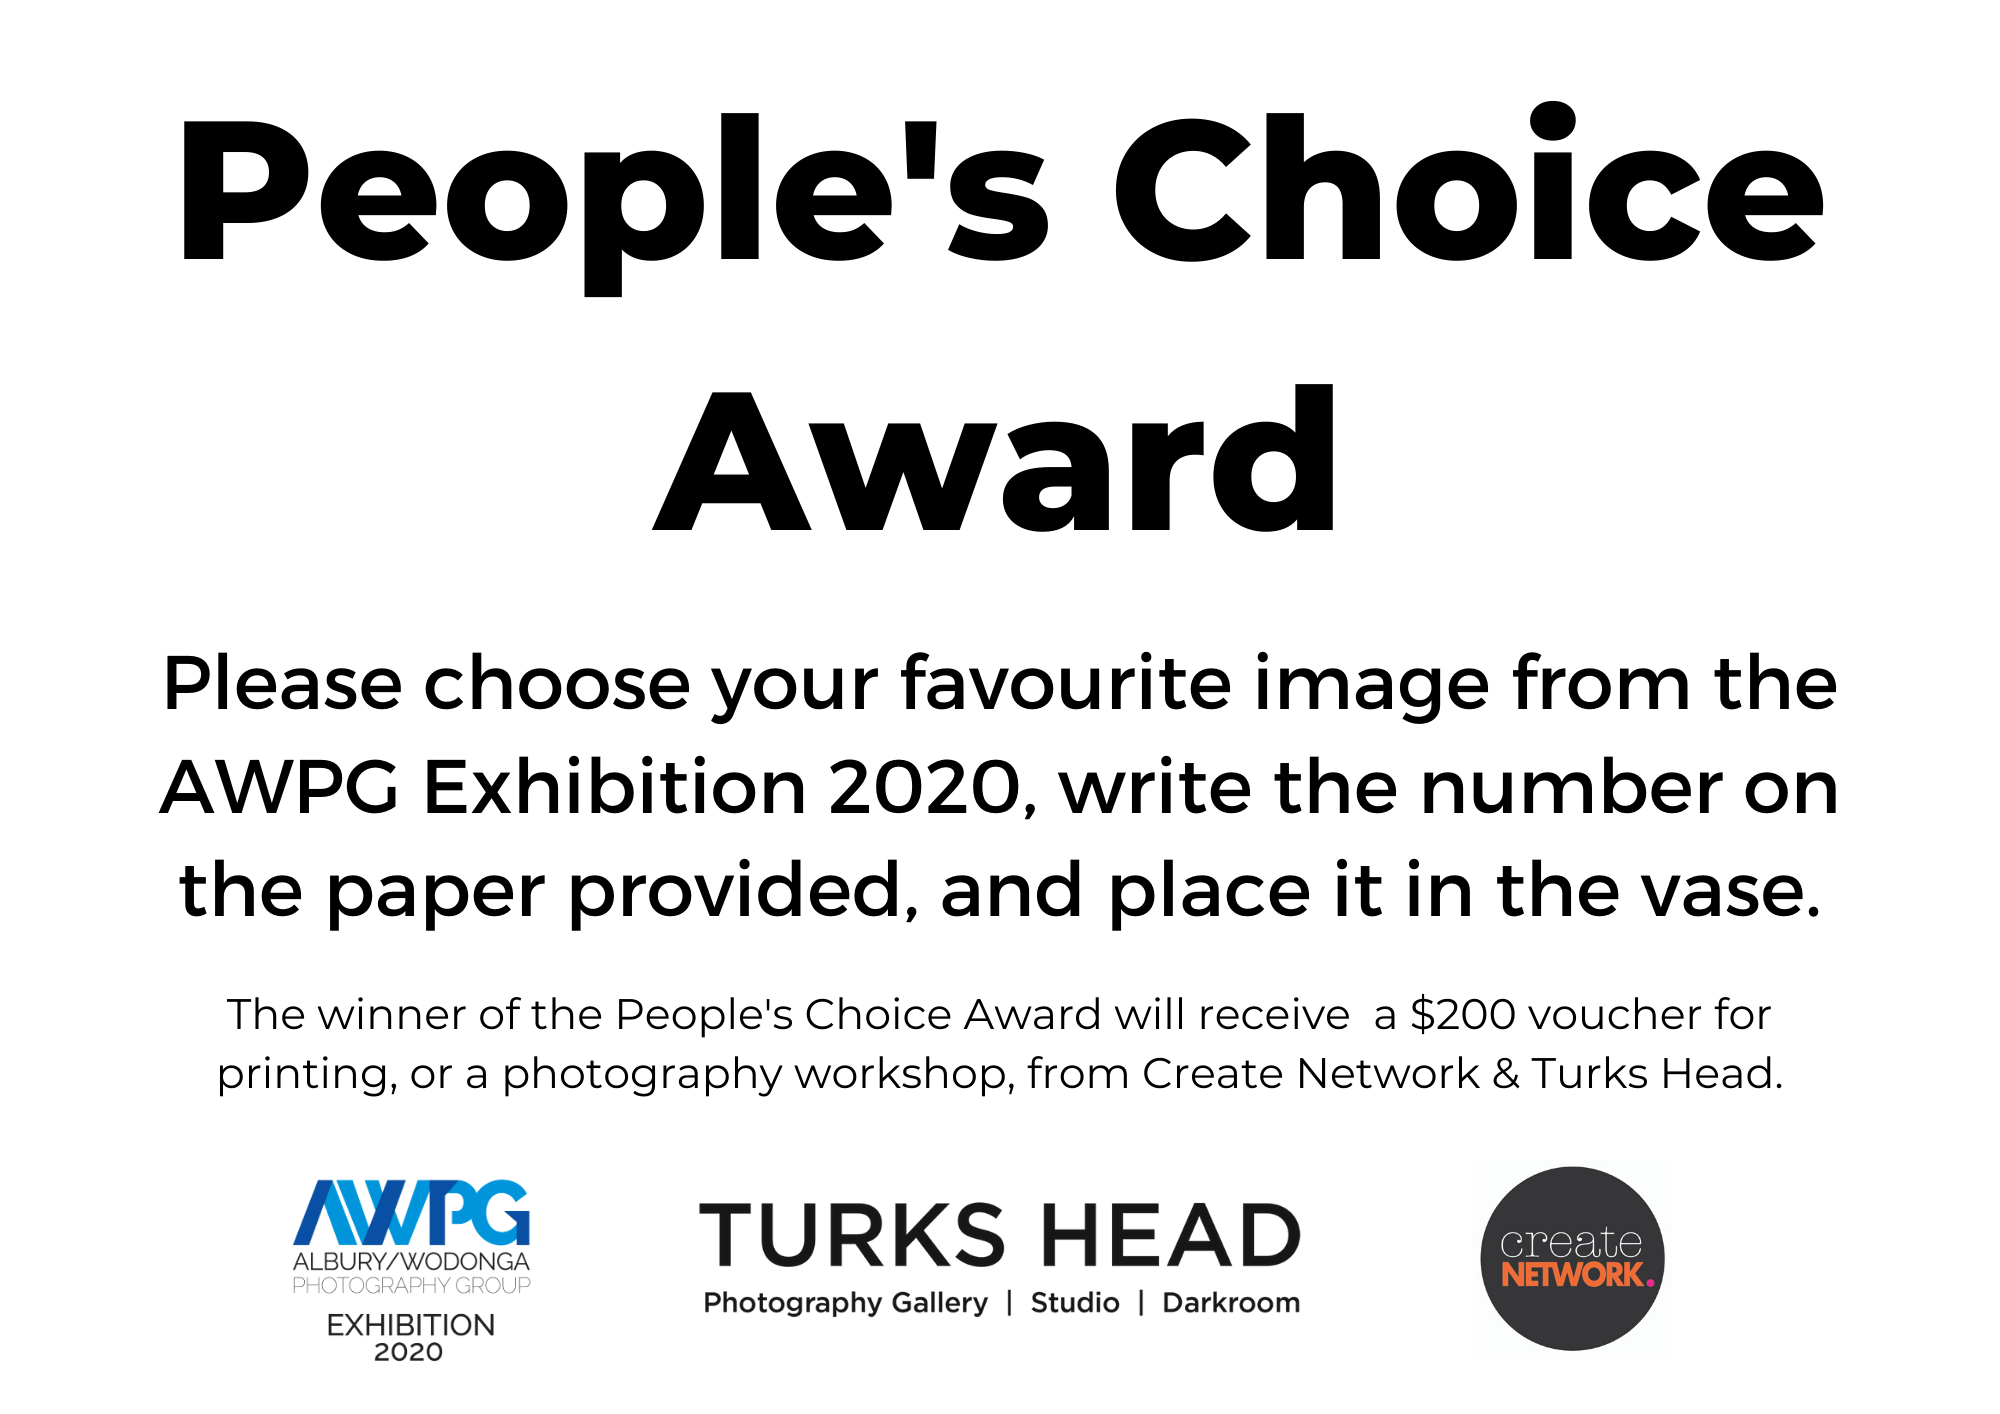 People's Choice Award AWPG Exhibition 2020